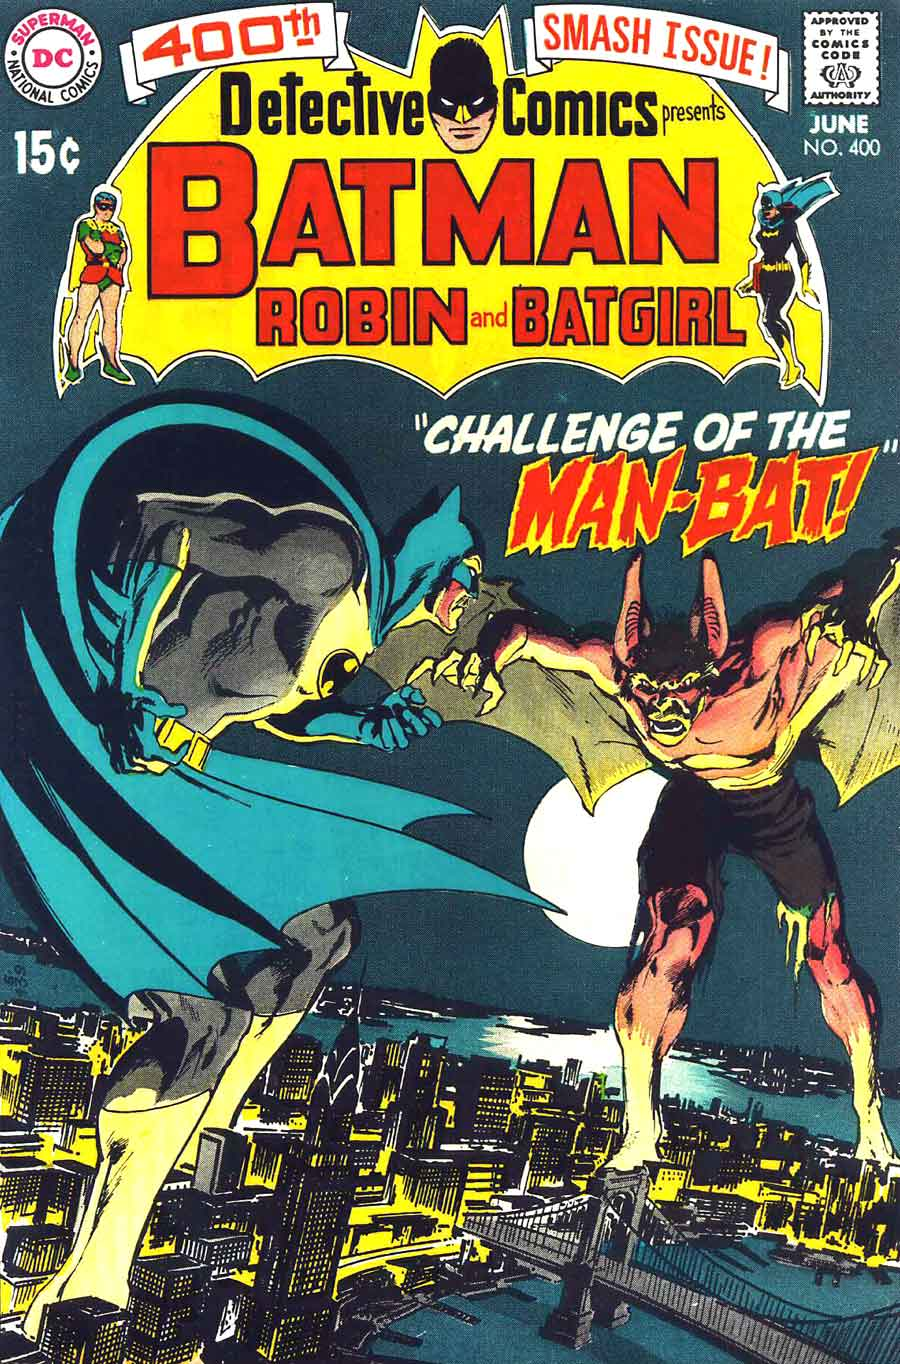 Detective Comics #400 dc 1st Man-Bat comic book cover art by Neal Adams